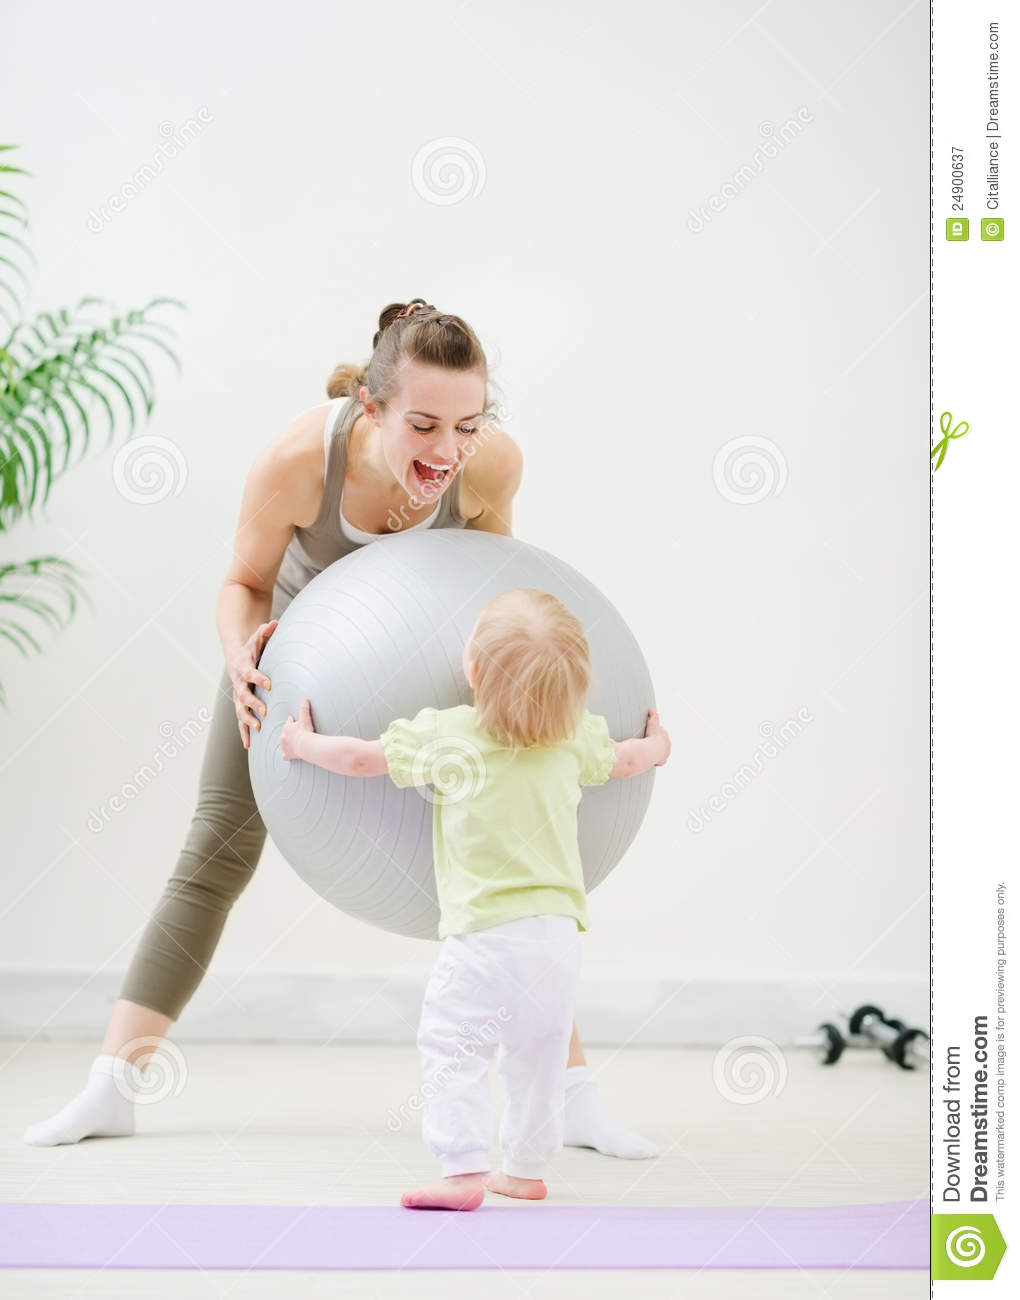 Mommy and baby fitness langley